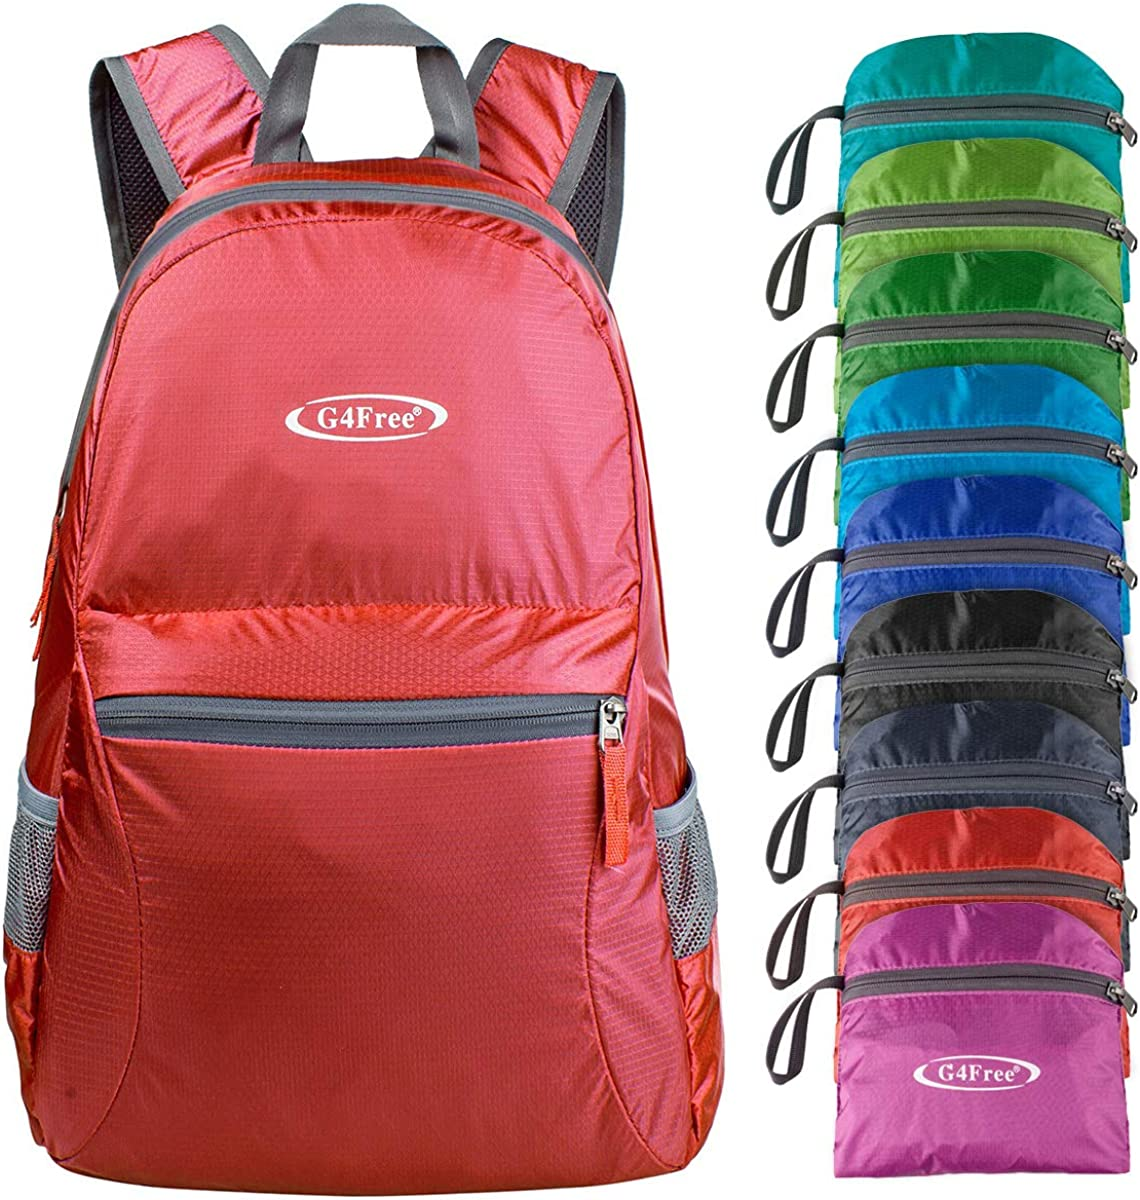 G4Free Ultra Lightweight Packable Backpack Travel Hiking Daypack Handy Foldable Water Resistant Camping Outdoor Backpack